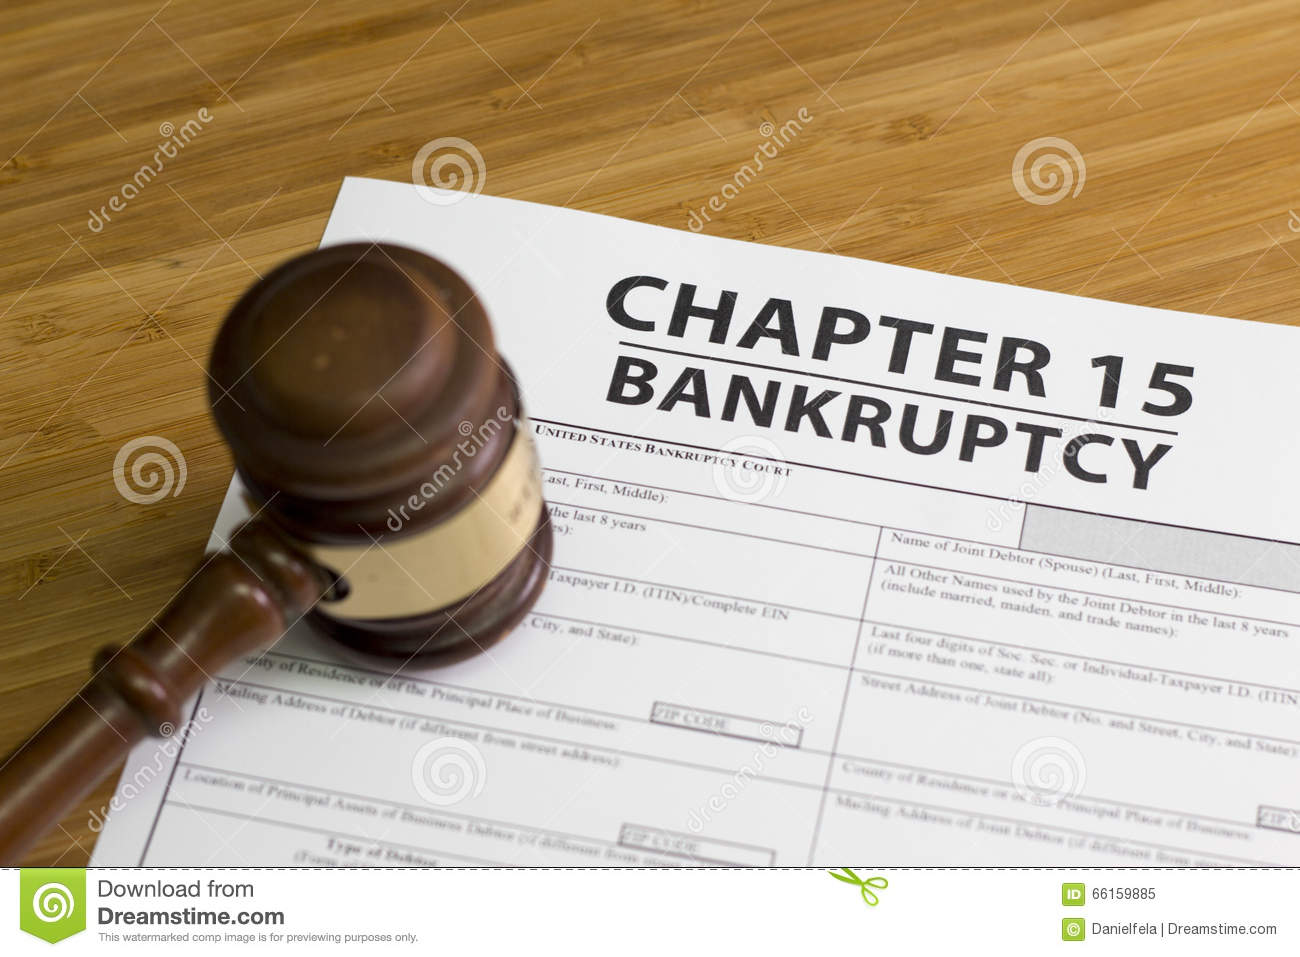 chapter 15 Chapter 15 is designed to facilitate us recognition of foreign insolvency proceedings and to increase international cooperation among courts in multinational insolvency cases in order to address more effectively issues in cross-border insolvency certain relief is afforded to a foreign debtor upon the filing of a valid petition.